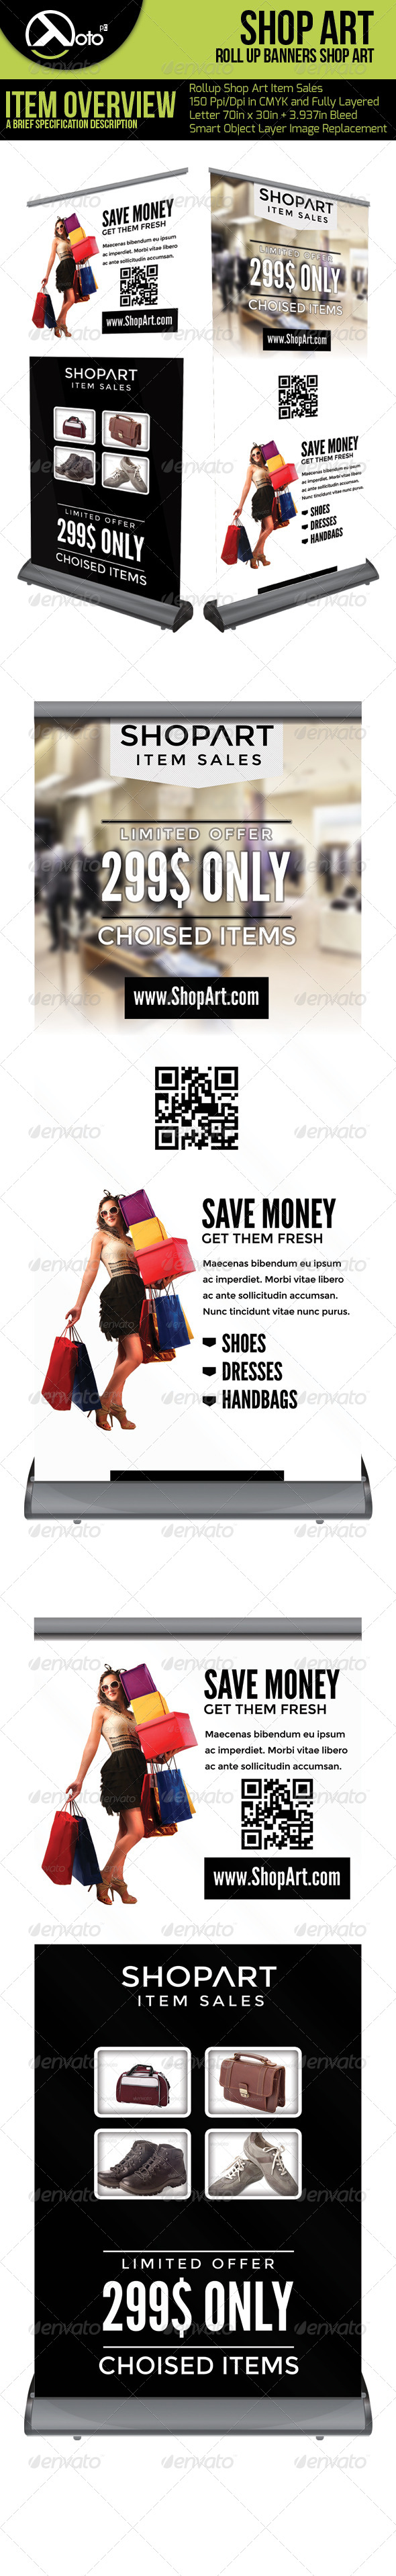 GraphicRiver Shop Art Roll Up Banners 6550593